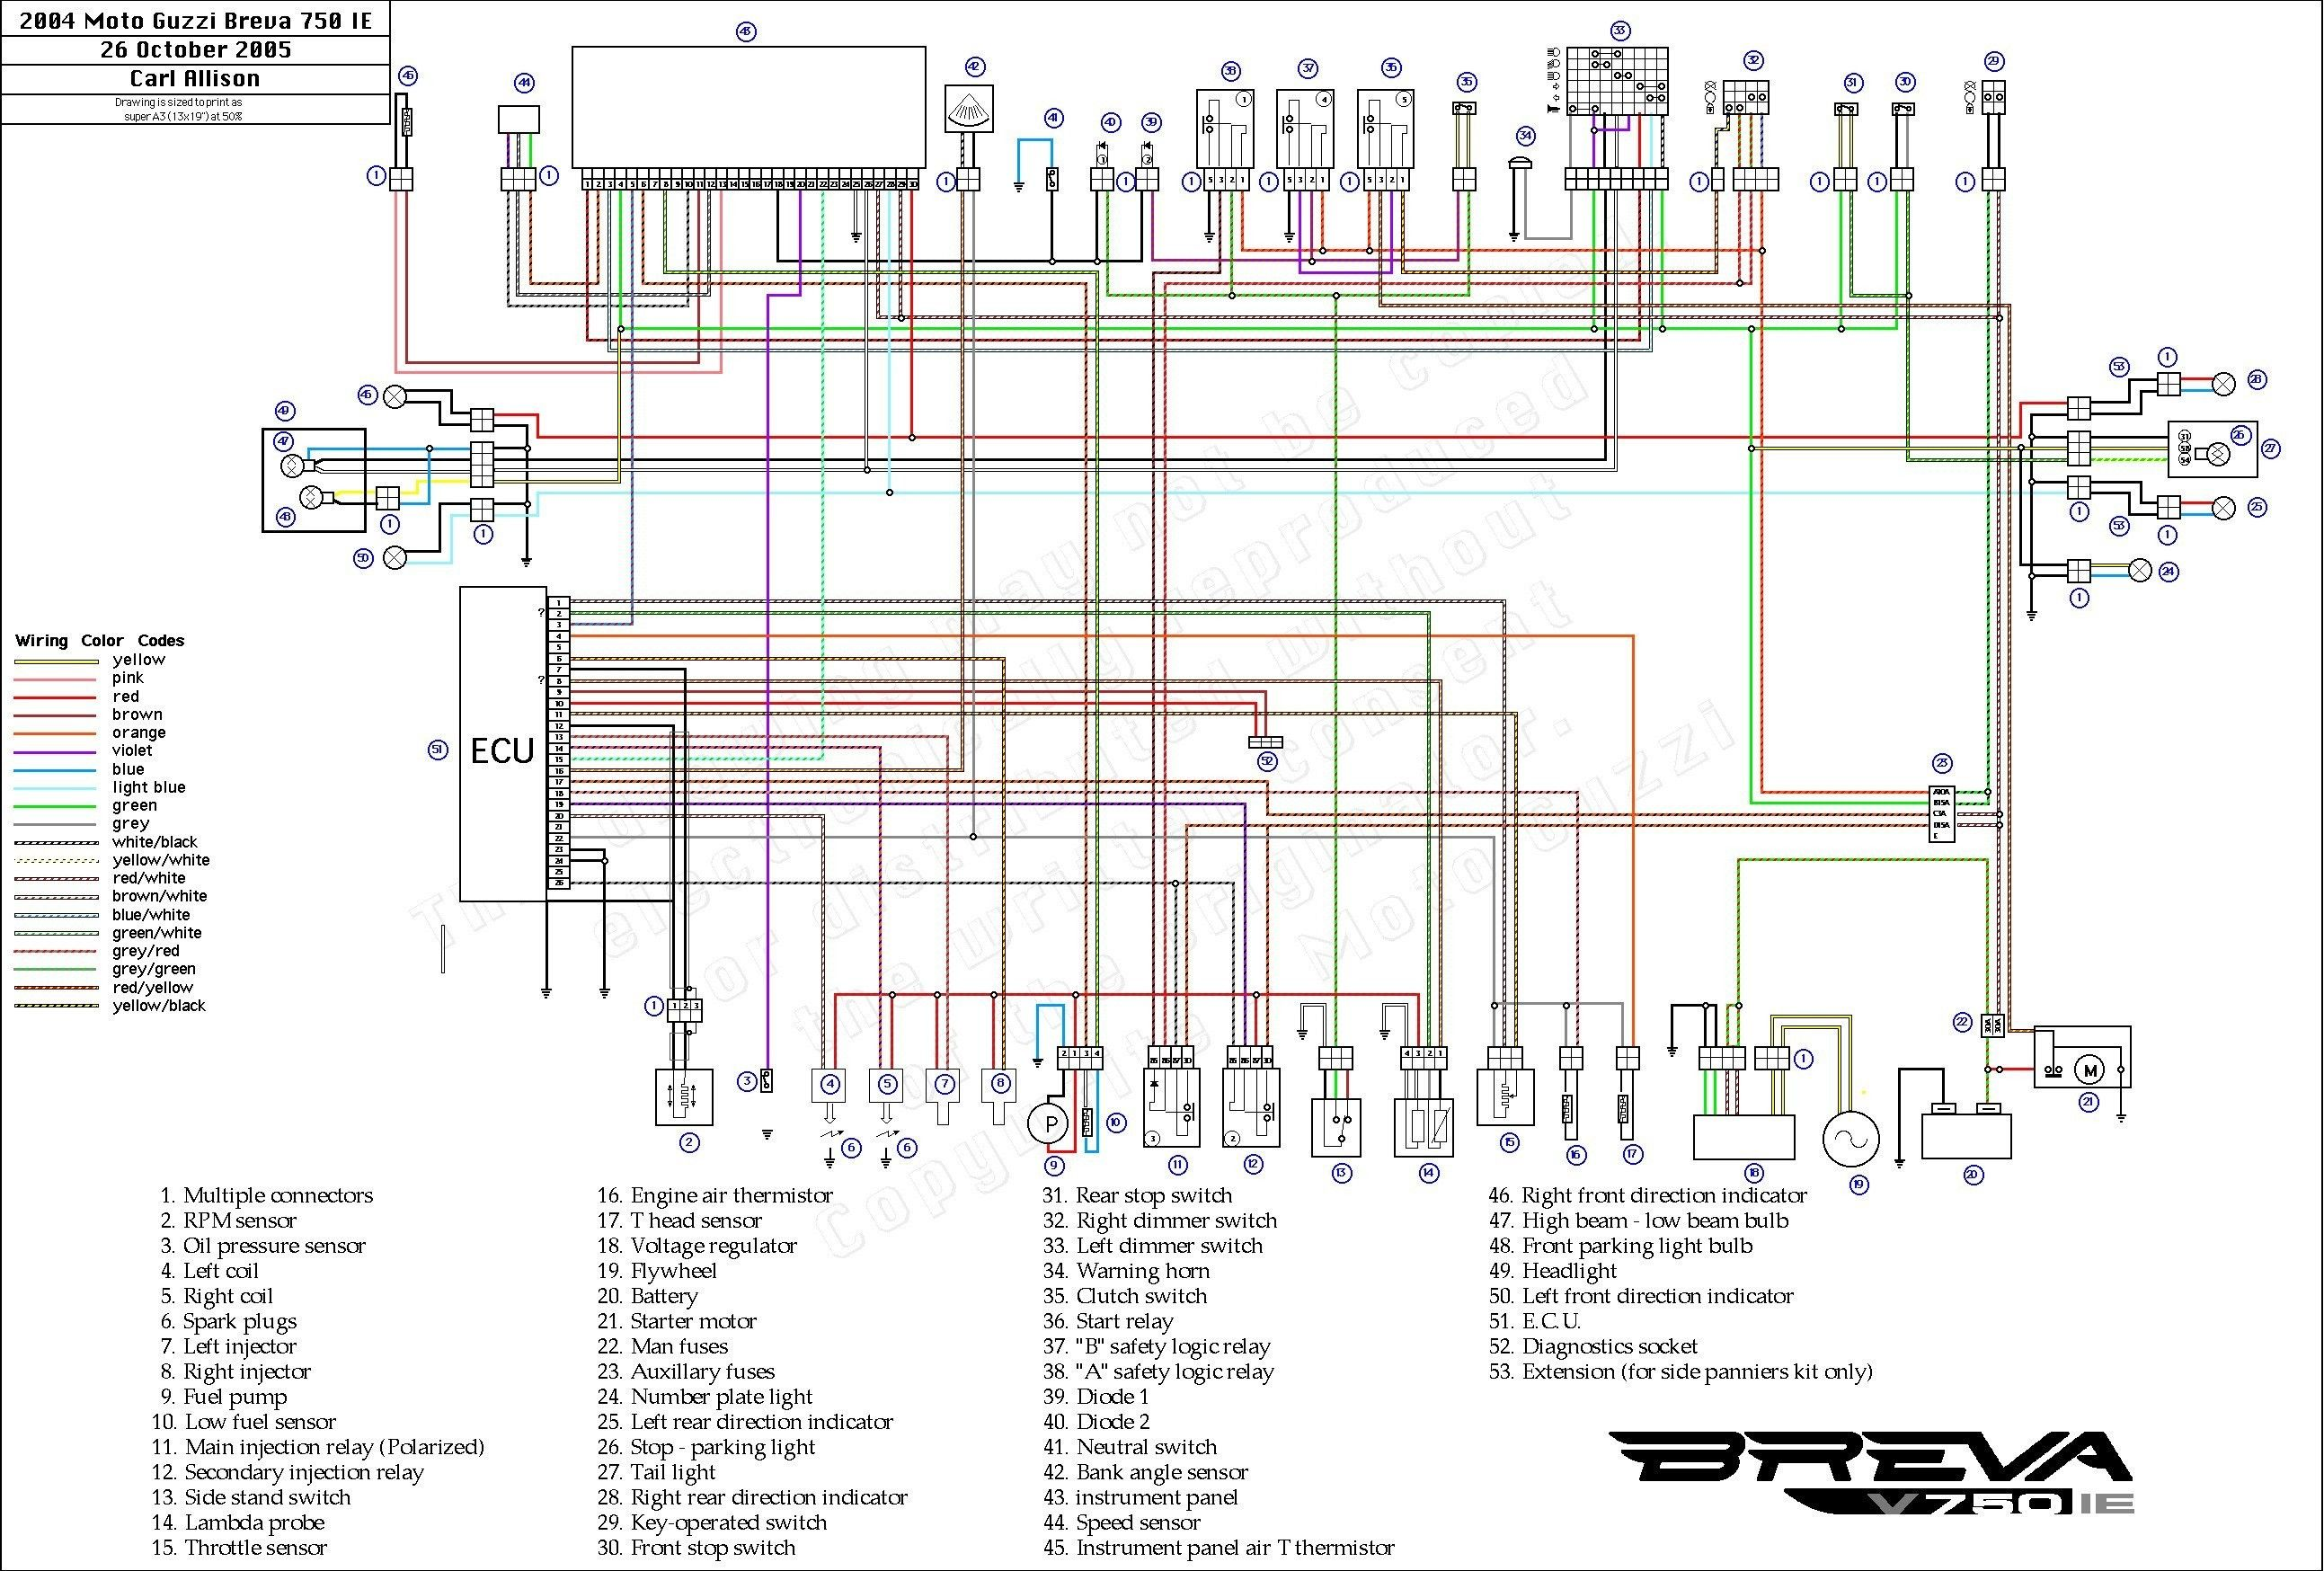 Unique Dimmer Switch Wiring Diagram Manual Diagram Diagramtemplate Diagramsample Conectores Electricos Ingenieria Electronica Electrica